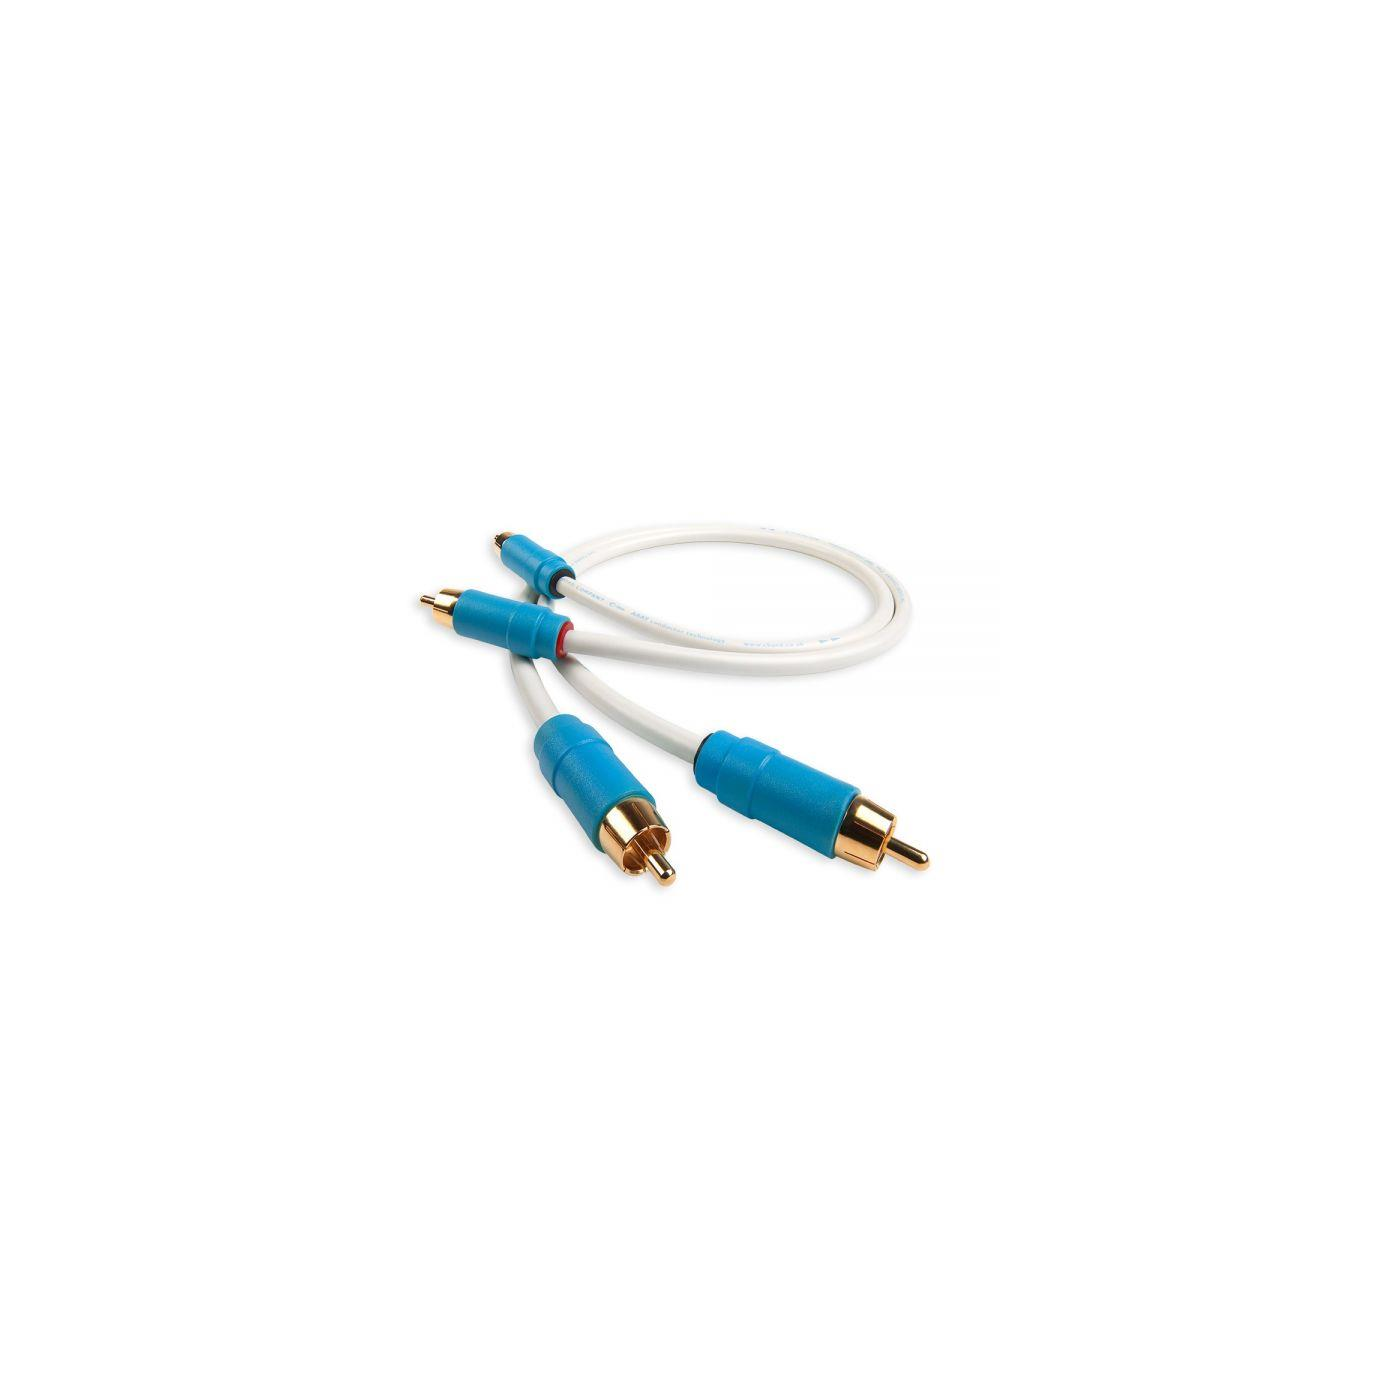 108806  LIN0005 Chord C-Line 2RCA to 2RCA 3m Signalkabel RCA